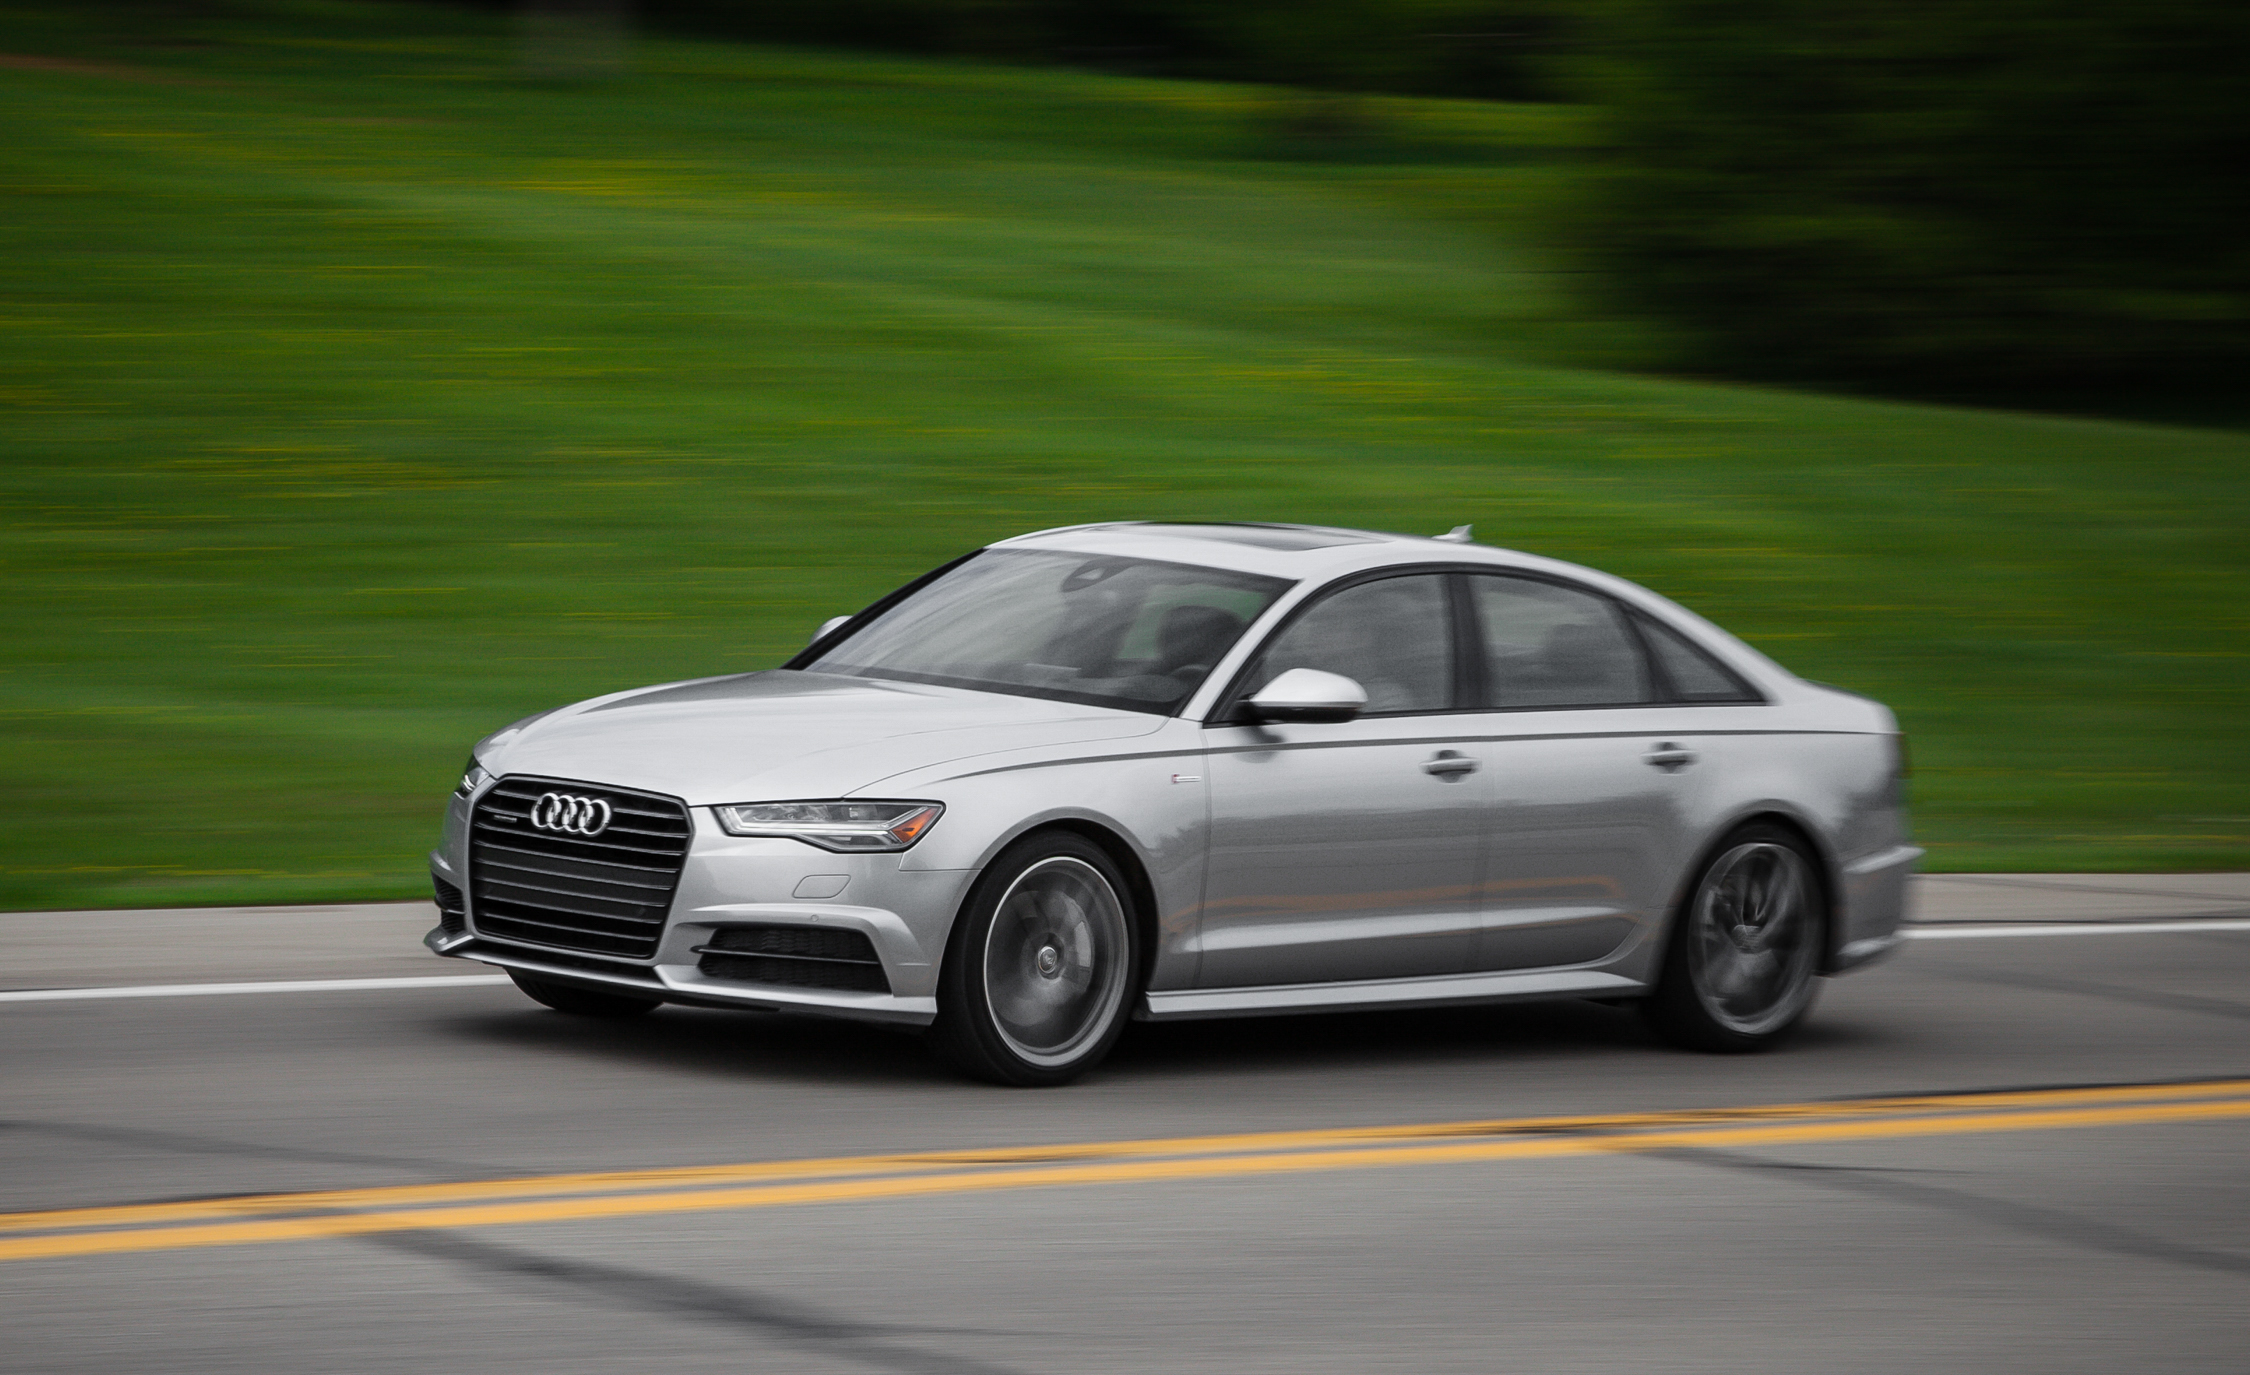 2016 Audi A6 (View 7 of 39)